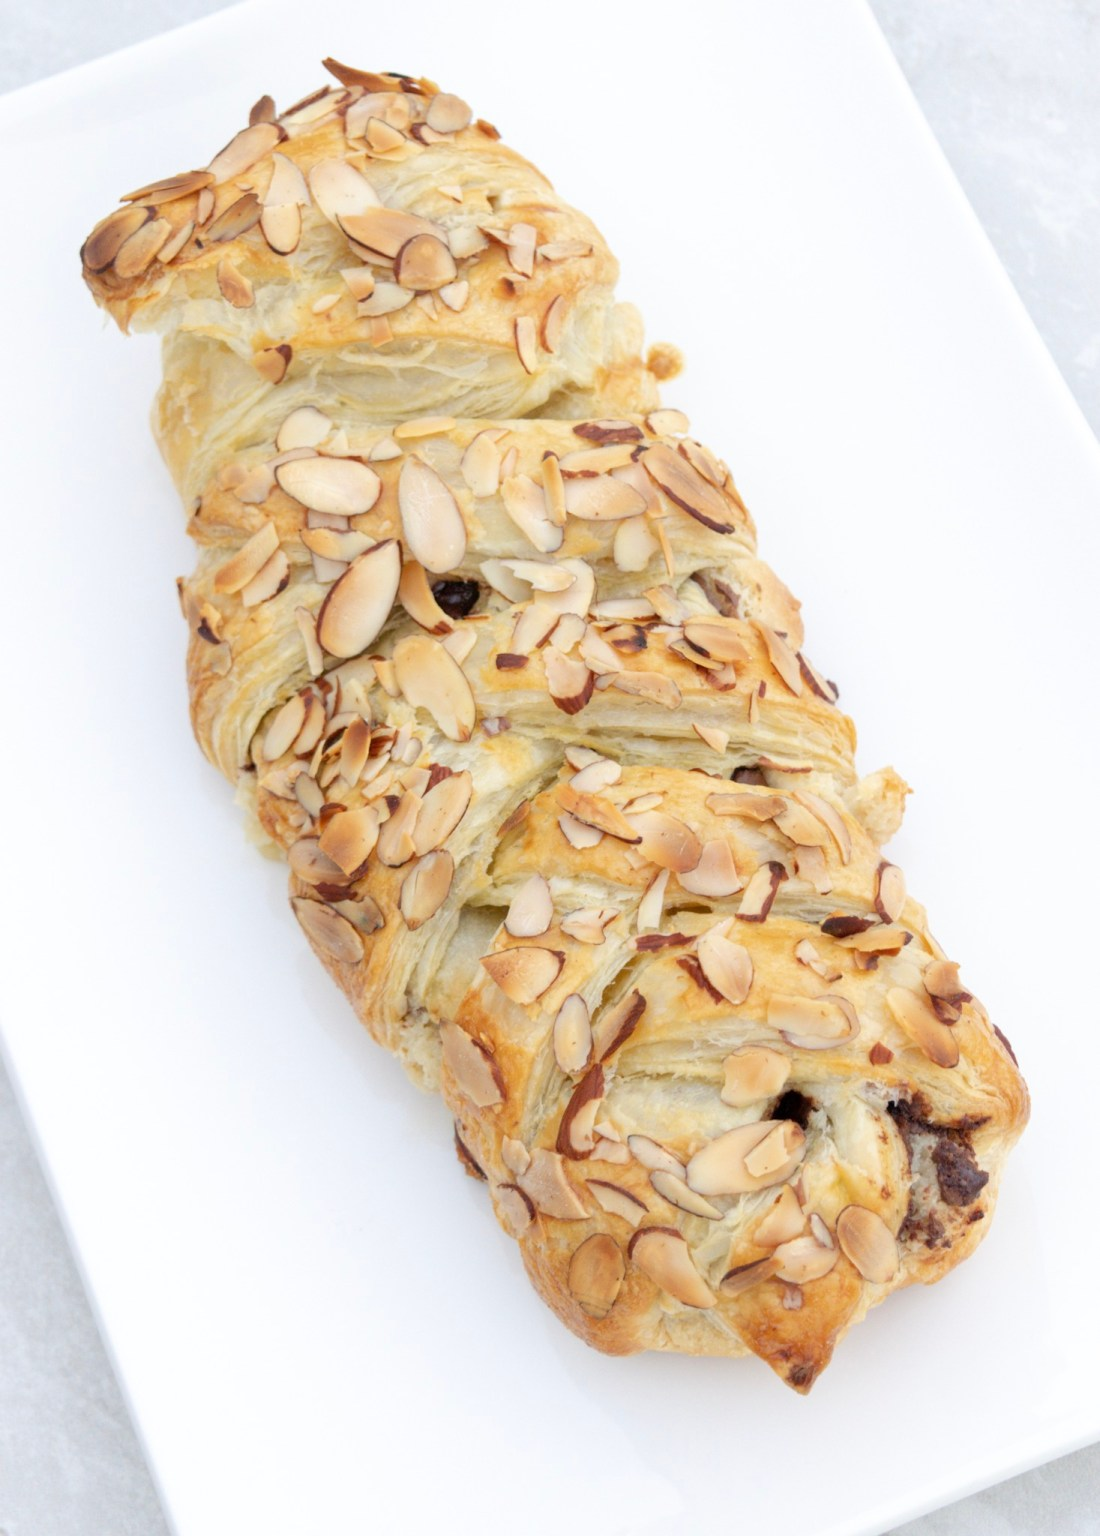 Almond Pastry